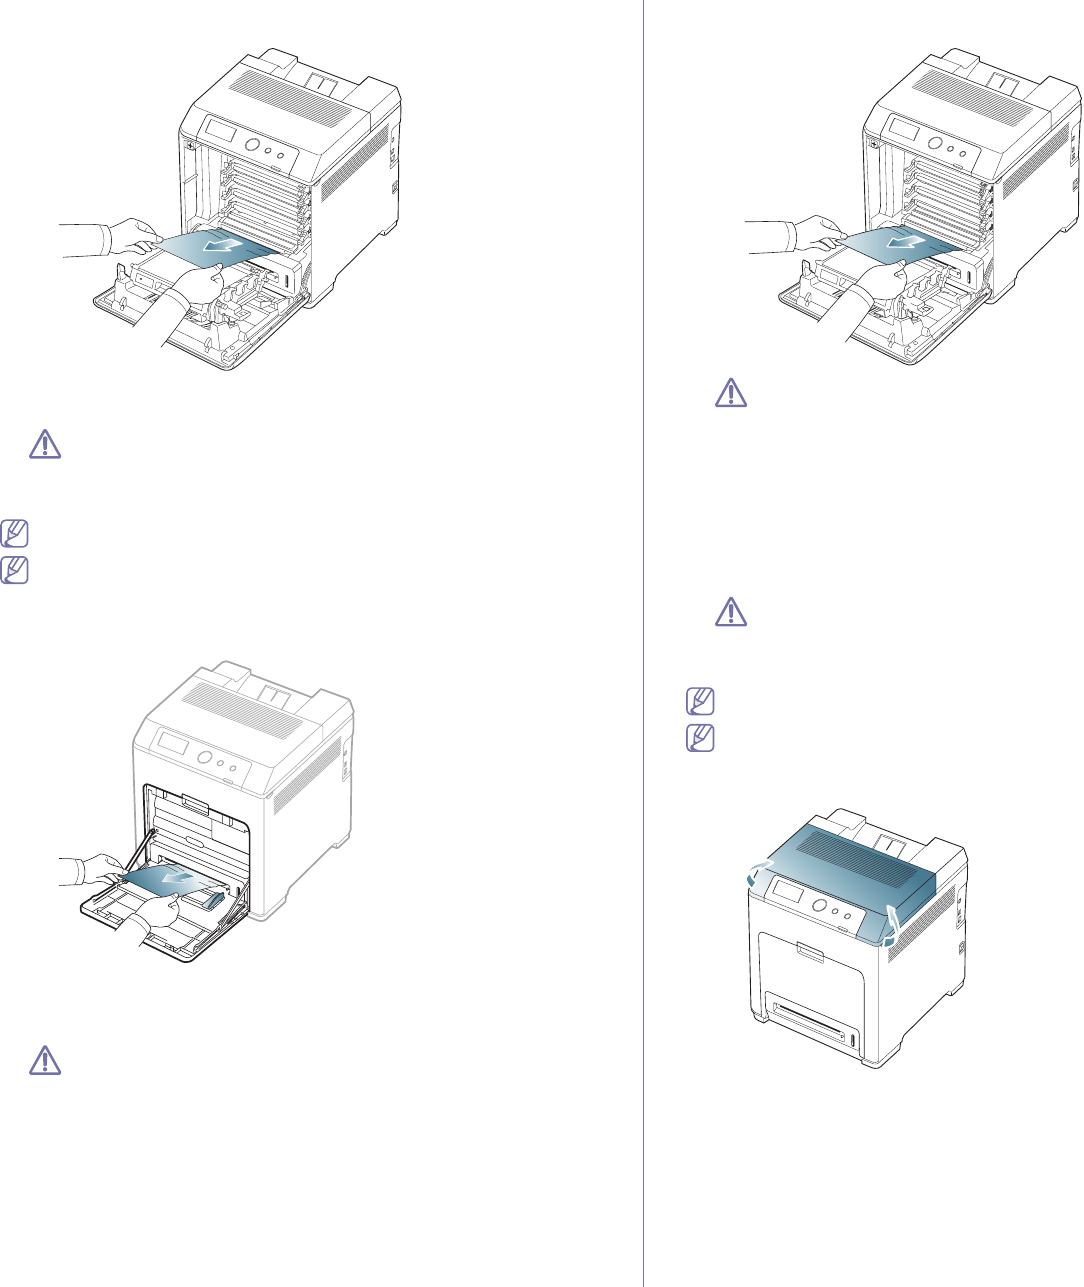 Samsung CLP-775 SERIES, CLP775ND In the multi-purpose tray